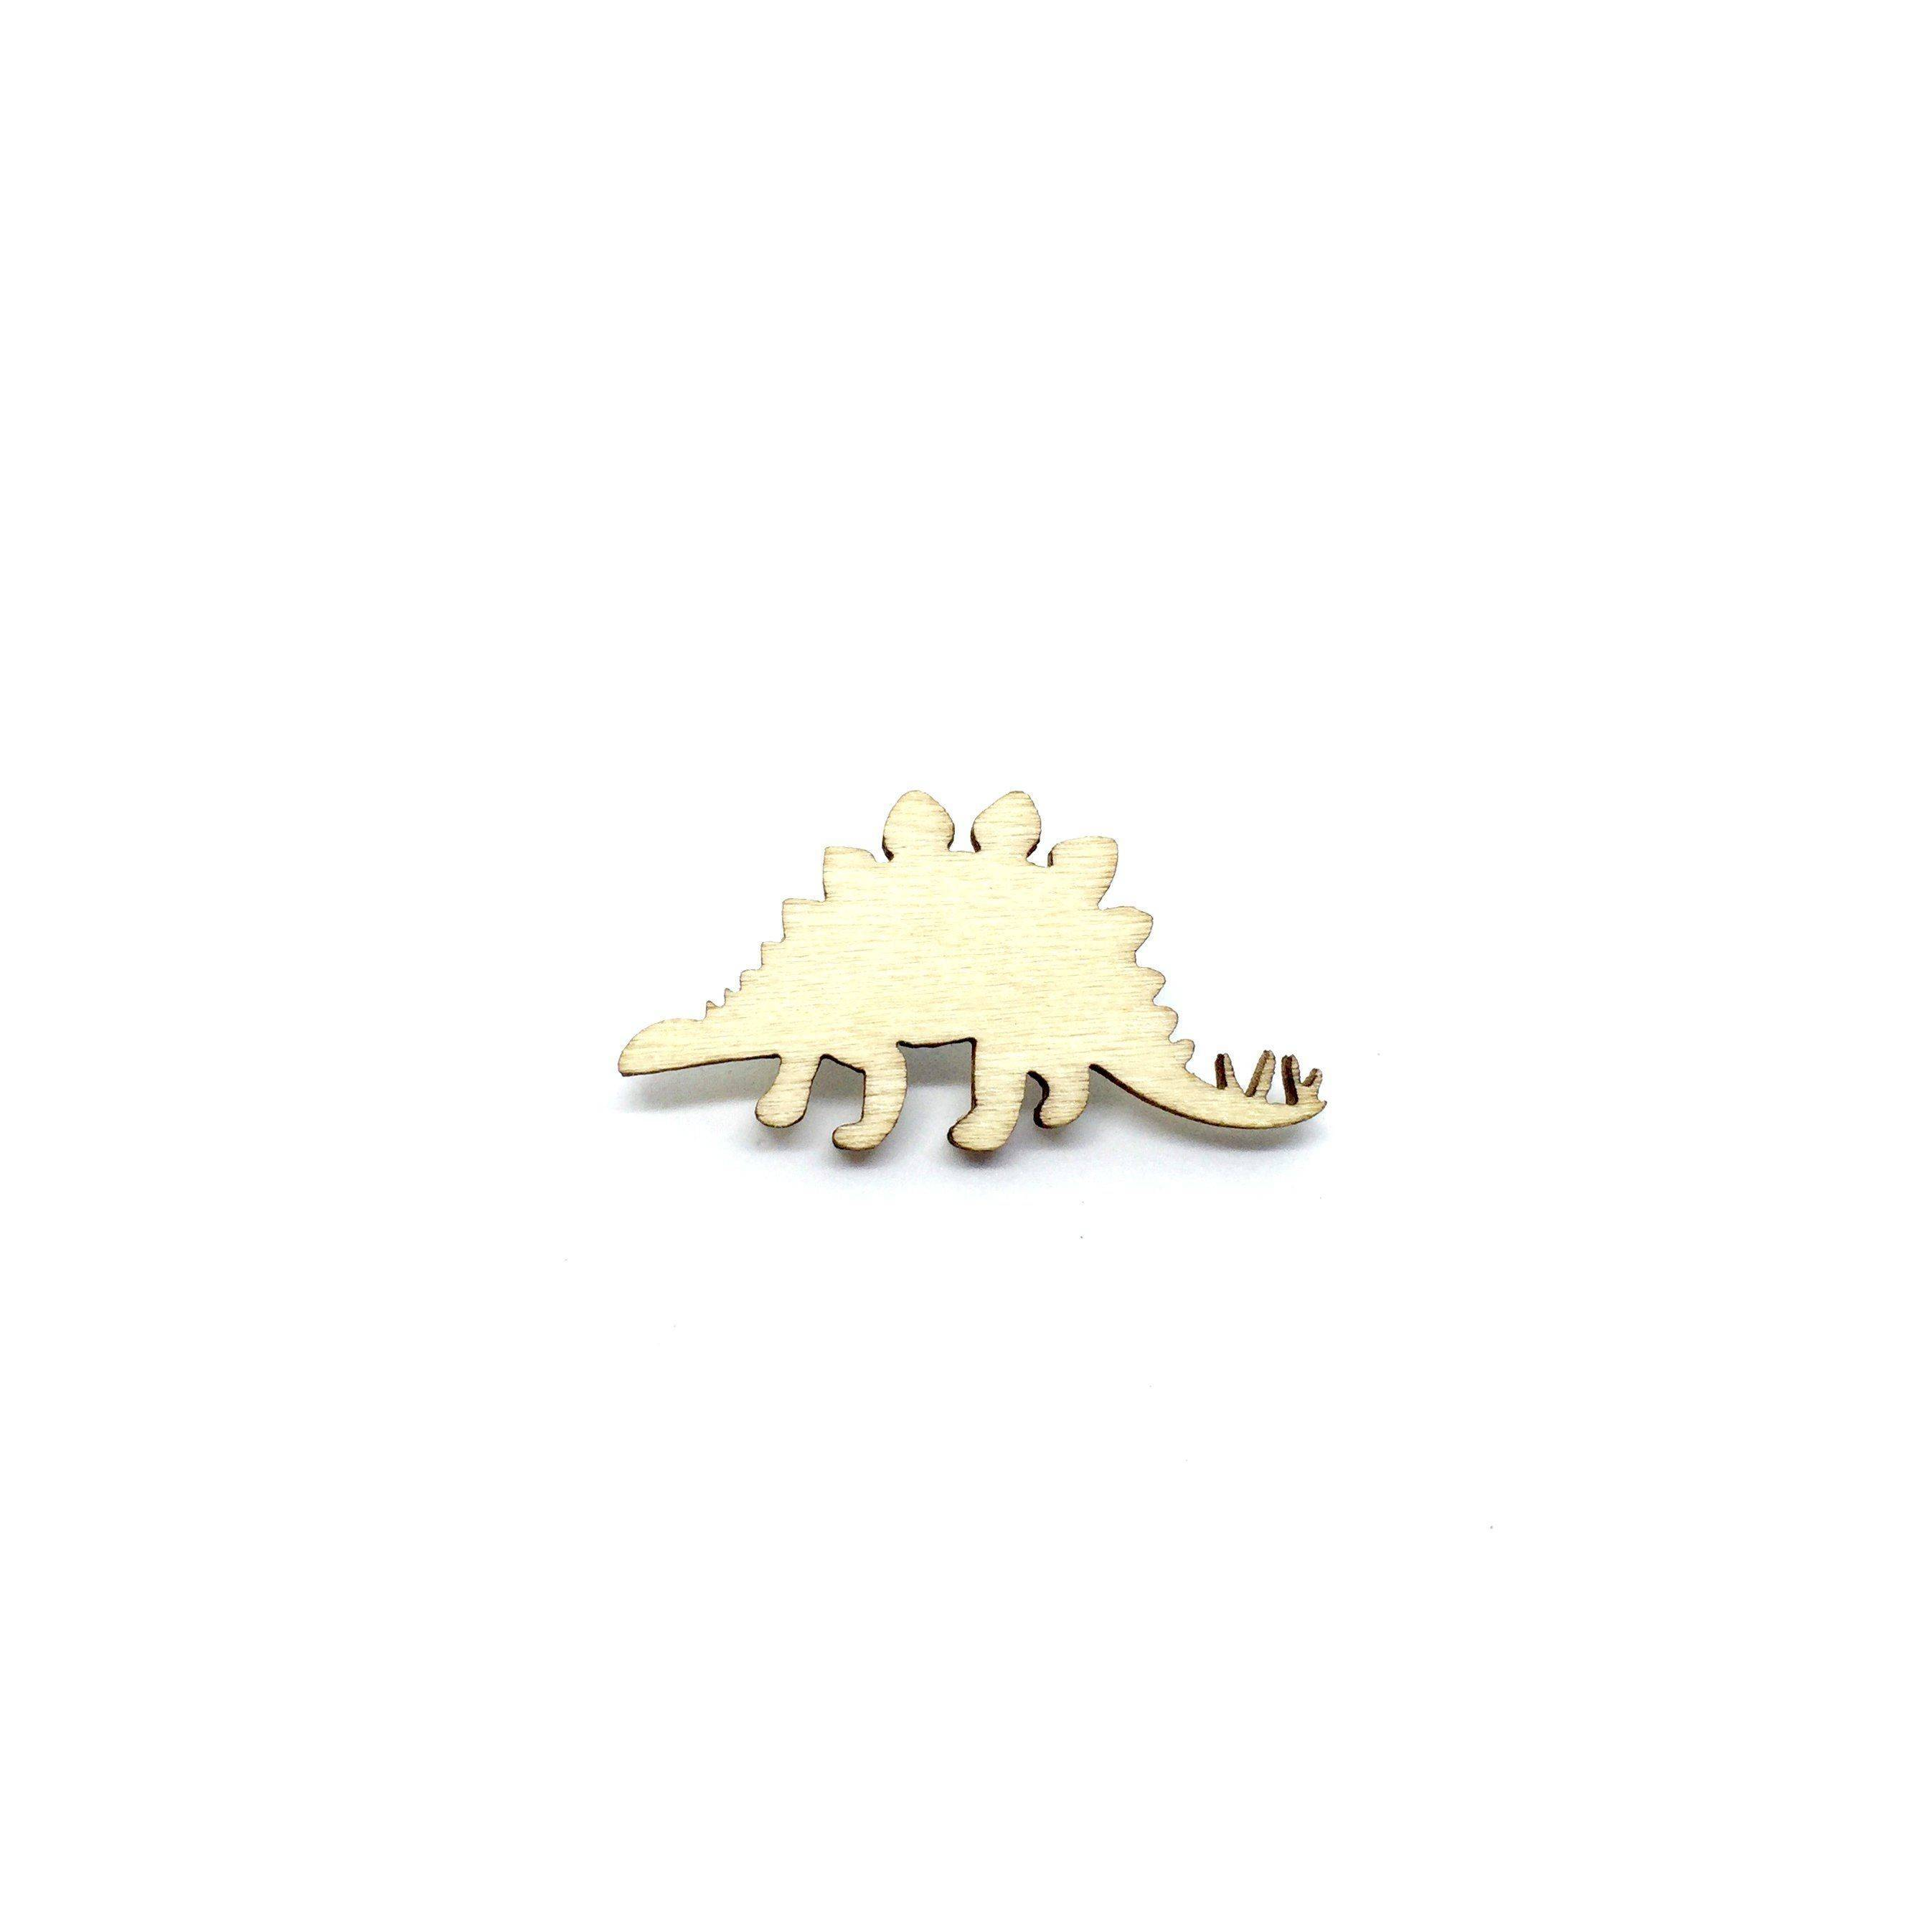 Stegosaurus Wooden Brooch Pin - Brooches - Paperdaise Accessories - Naiise